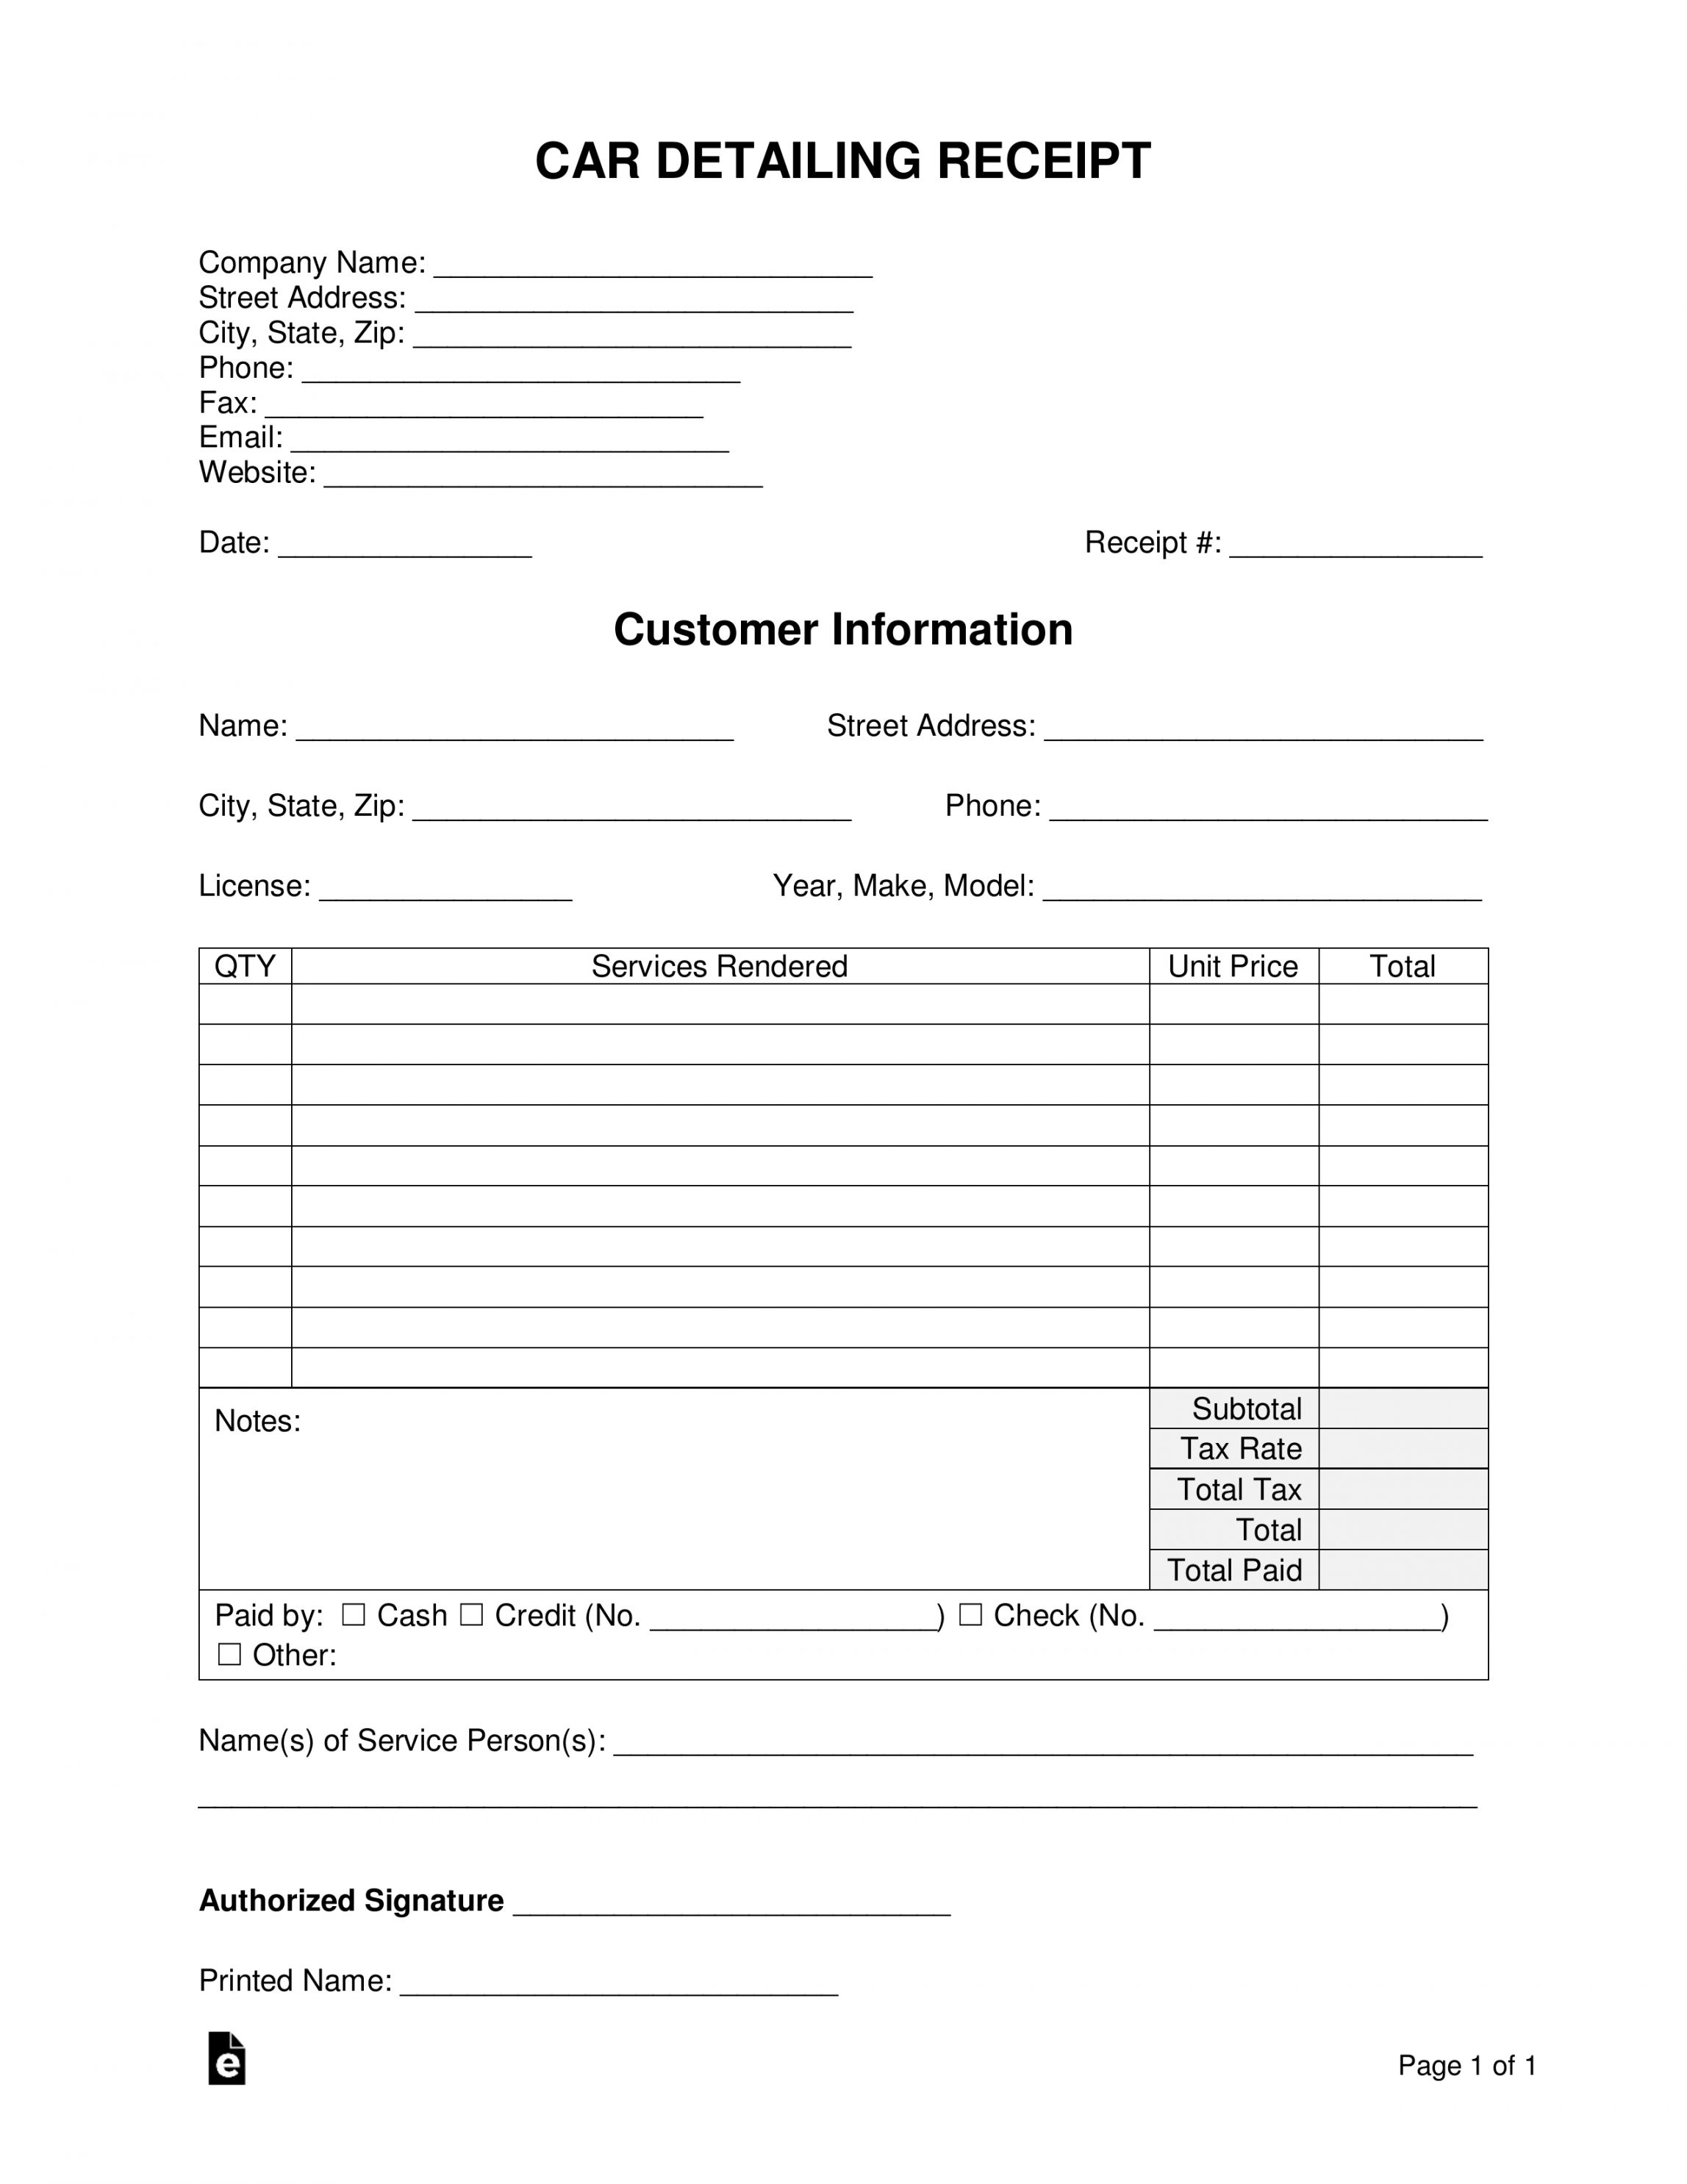 Get Our Image Of Car Detailing Receipt Template Invoice Template Receipt Template Templates